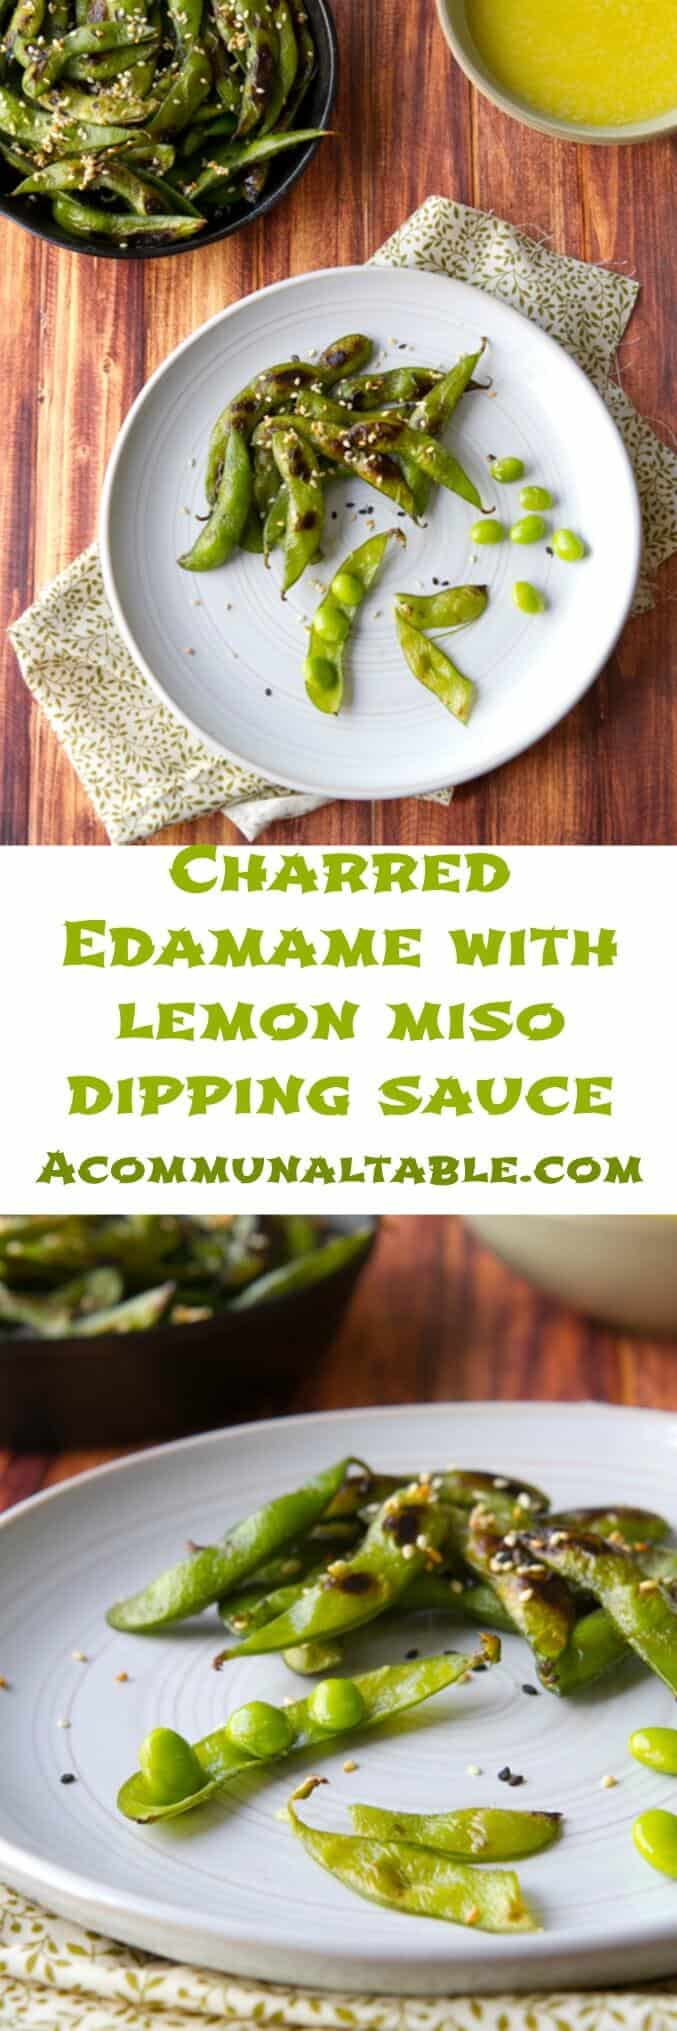 This Charred Edamame with Miso Lemon Dipping sauce appetizer recipe is healthy, delicious and ready in under 30 minutes for vegetarians and vegans alike.